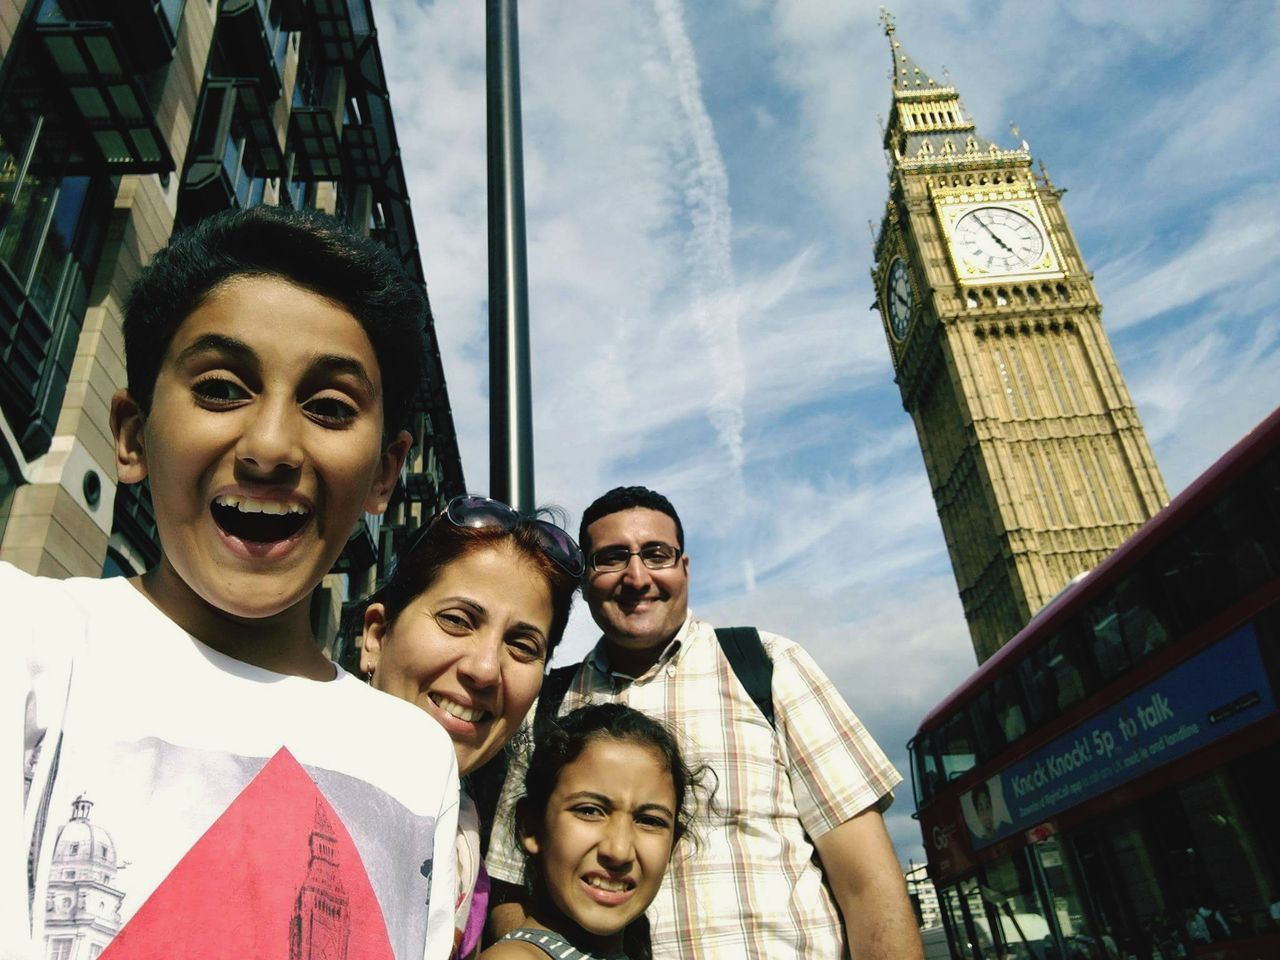 looking at camera, tourism, real people, portrait, smiling, travel, clock tower, architecture, young adult, young women, travel destinations, lifestyles, togetherness, built structure, vacations, leisure activity, building exterior, outdoors, ferris wheel, girls, day, low angle view, headshot, standing, happiness, sky, bonding, selfie, city, people